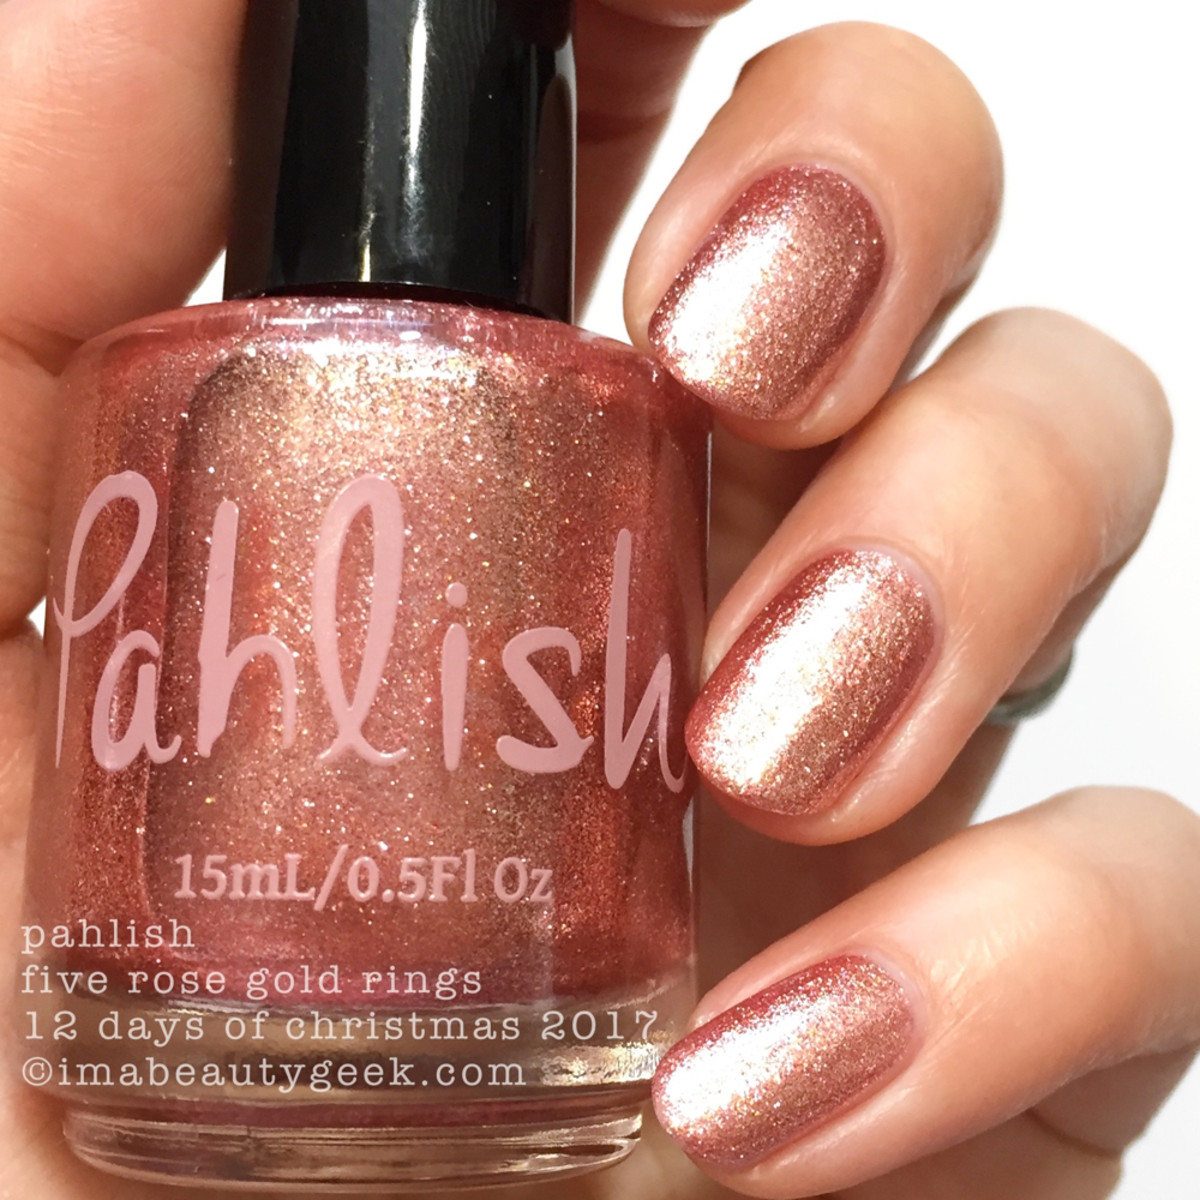 Pahlish Five Rose Gold Rings - Pahlish 12 Days of Christmas 2017 2